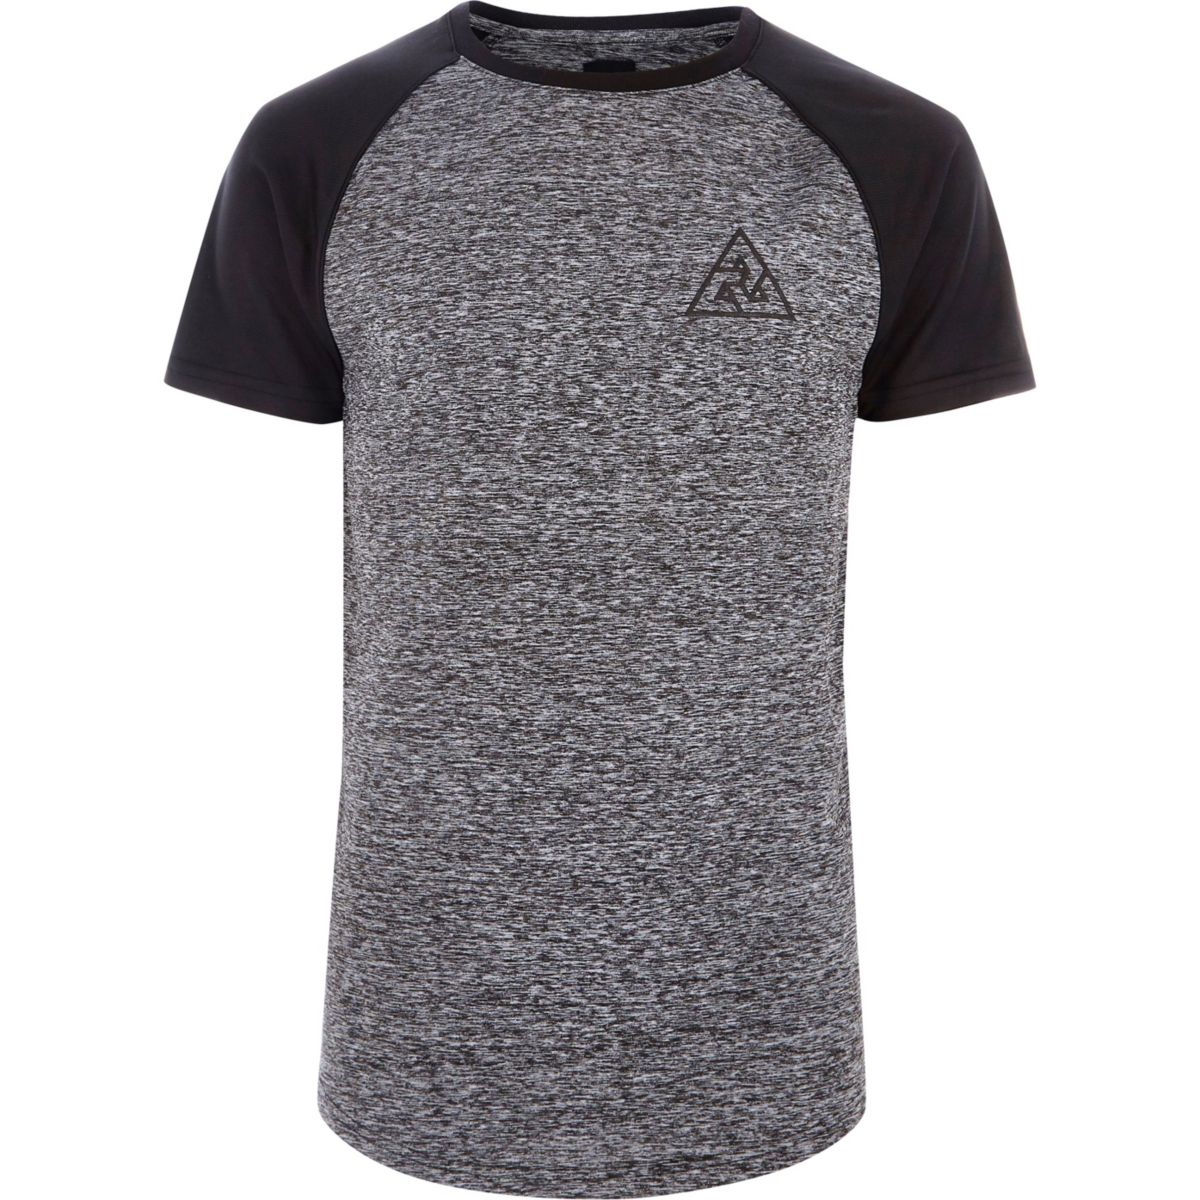 Grey raglan sleeve muscle fit knit T-shirt